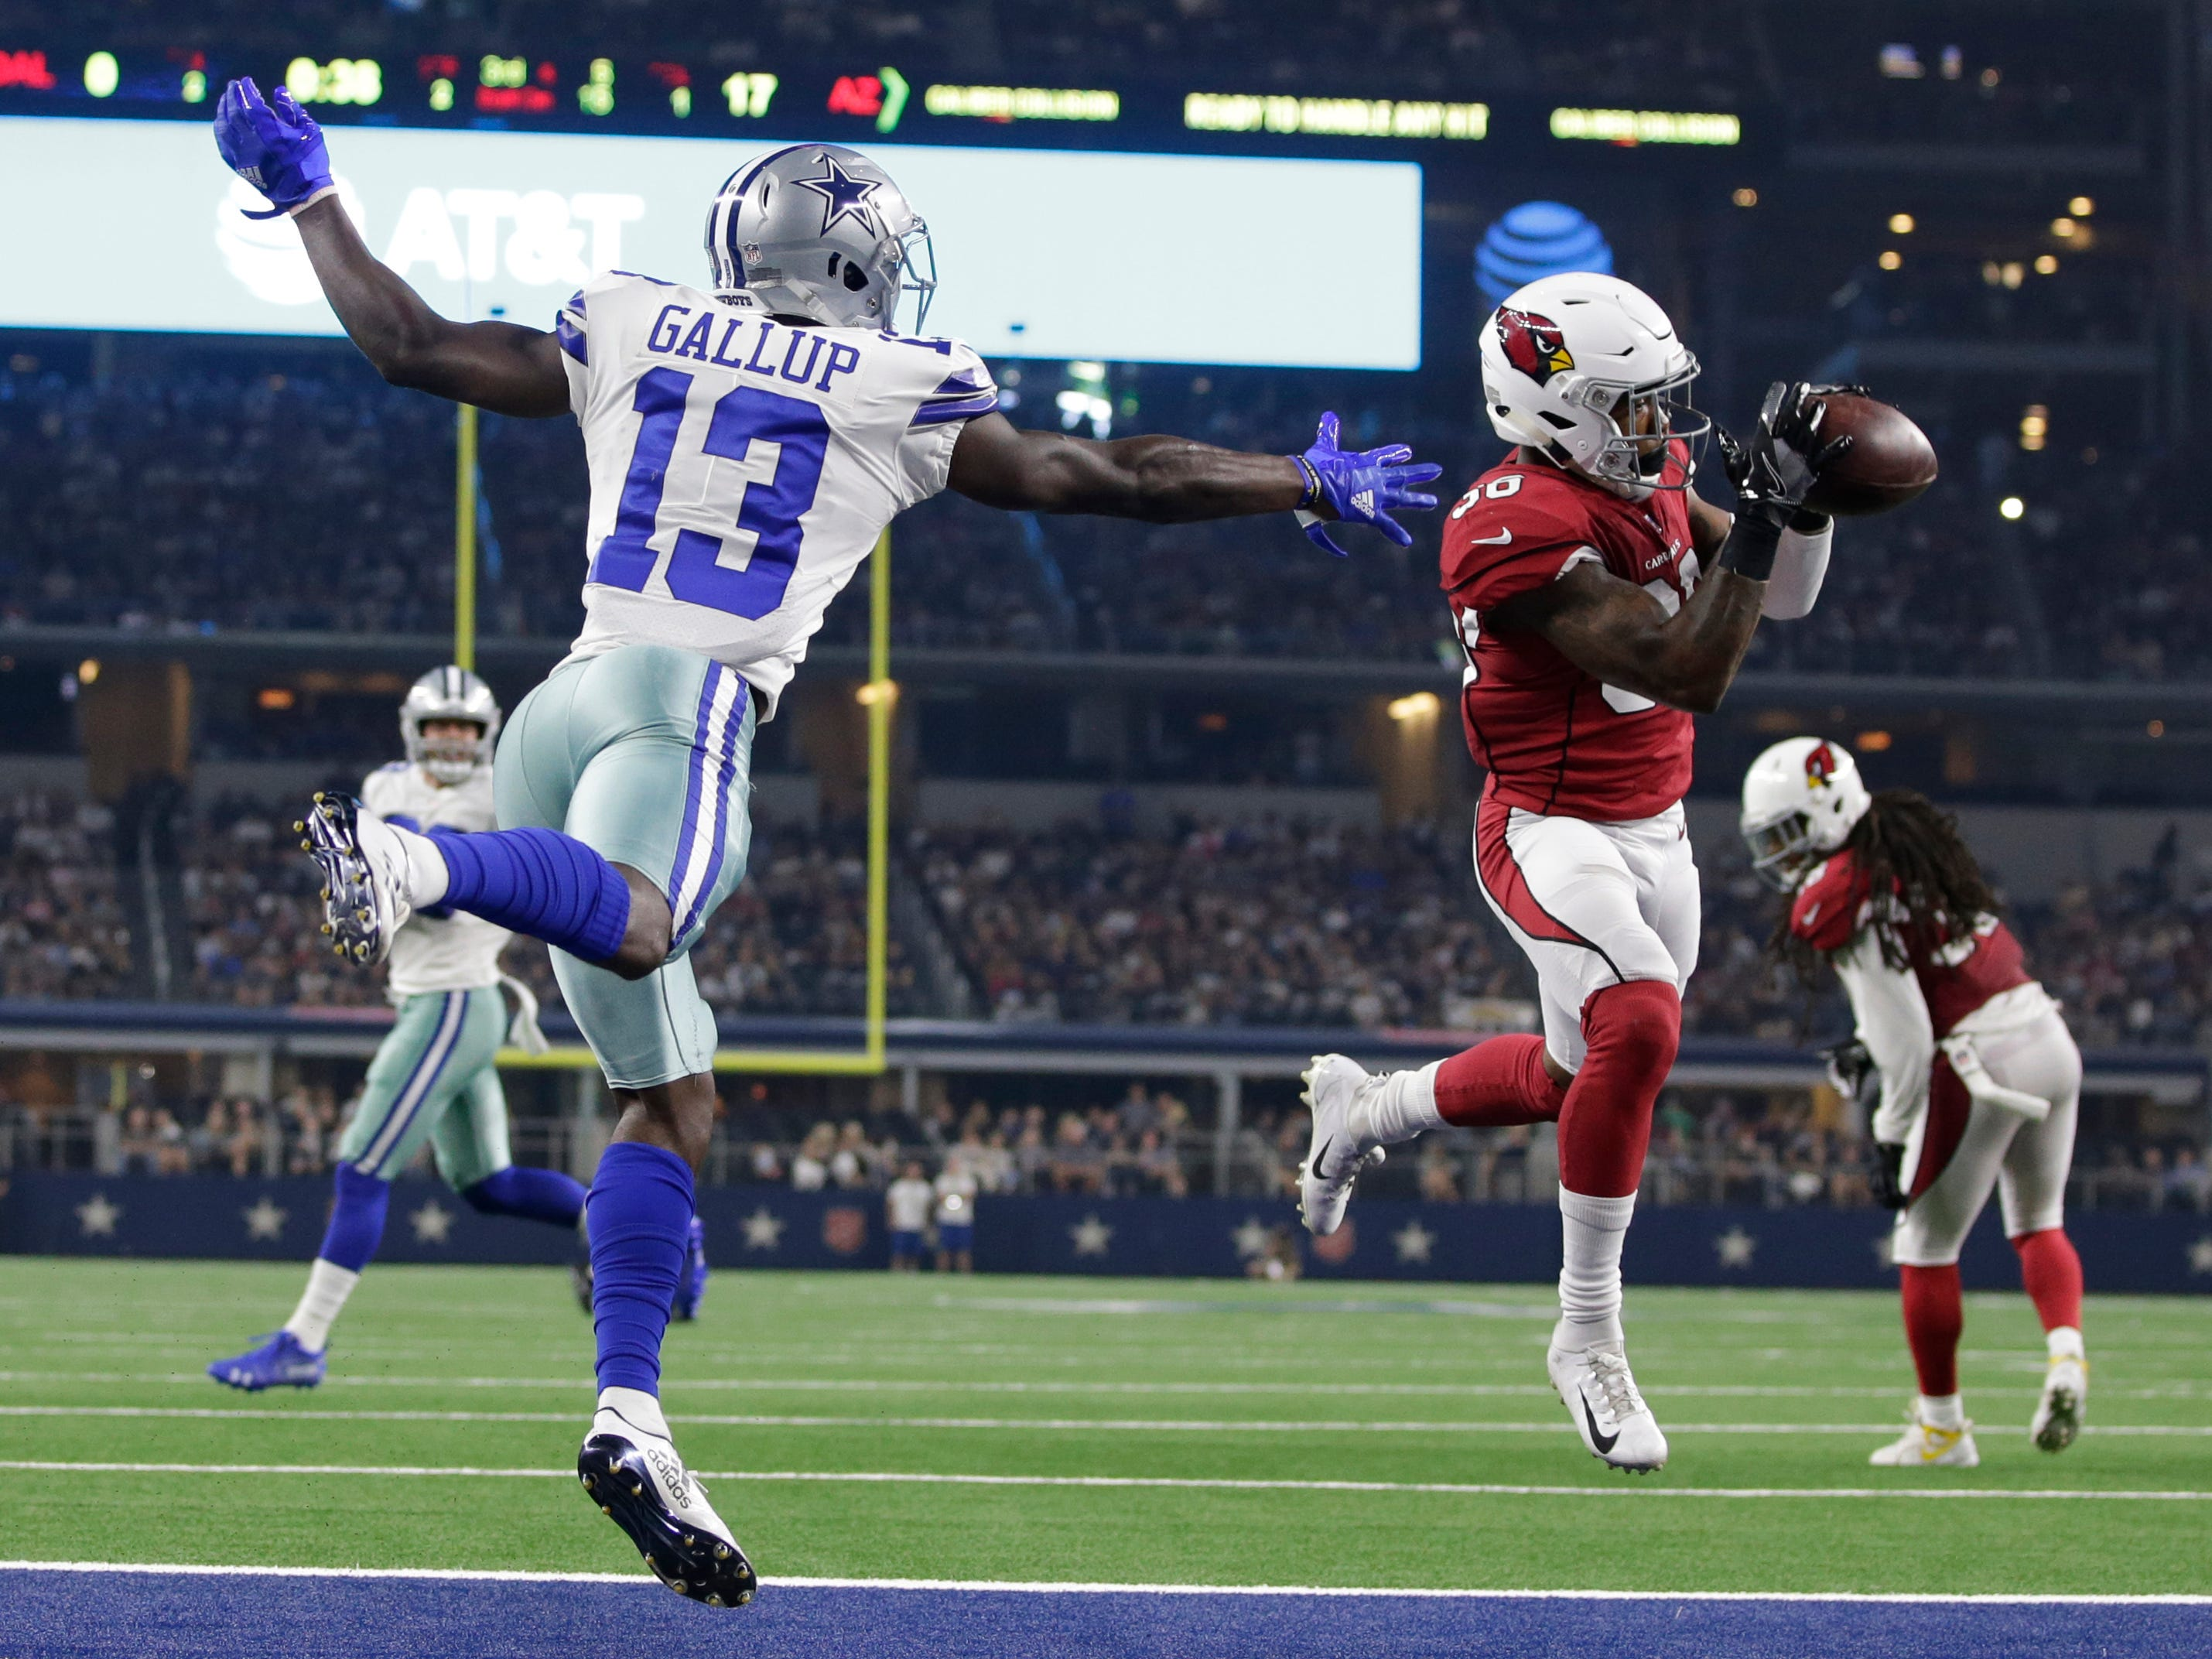 Aug 26, 2018; Arlington, TX, USA; Arizona Cardinals defensive back Budda Baker (36) intercepts a pass intended for Dallas Cowboys wide receiver Michael Gallup (13) in the second quarter at AT&T Stadium. Mandatory Credit: Tim Heitman-USA TODAY Sports